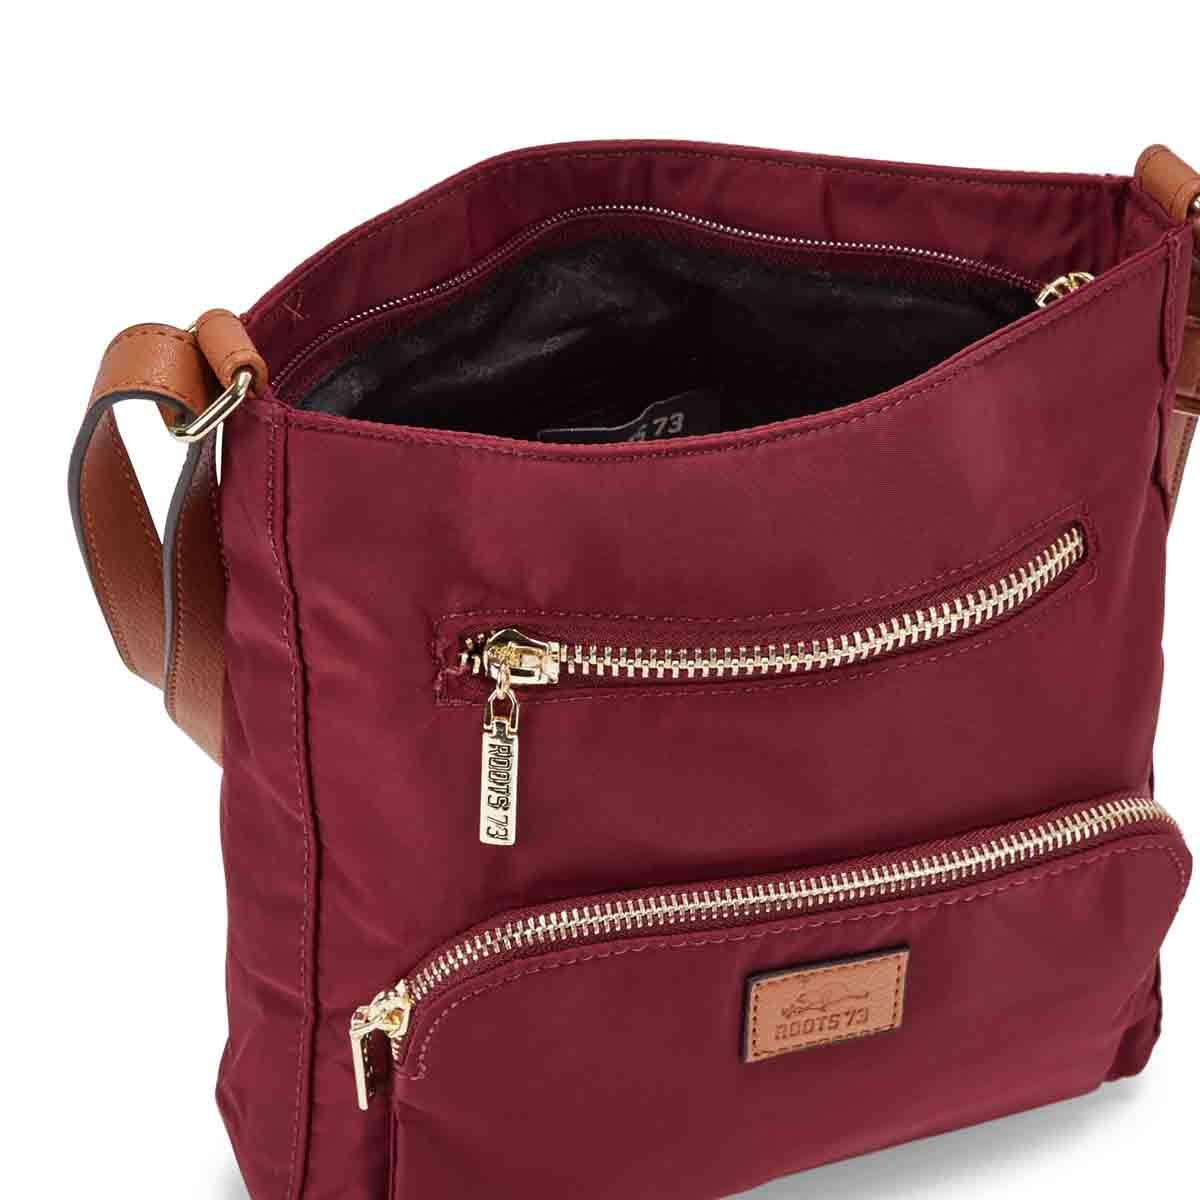 Lds Roots73 brd 2 front pocket crossbody